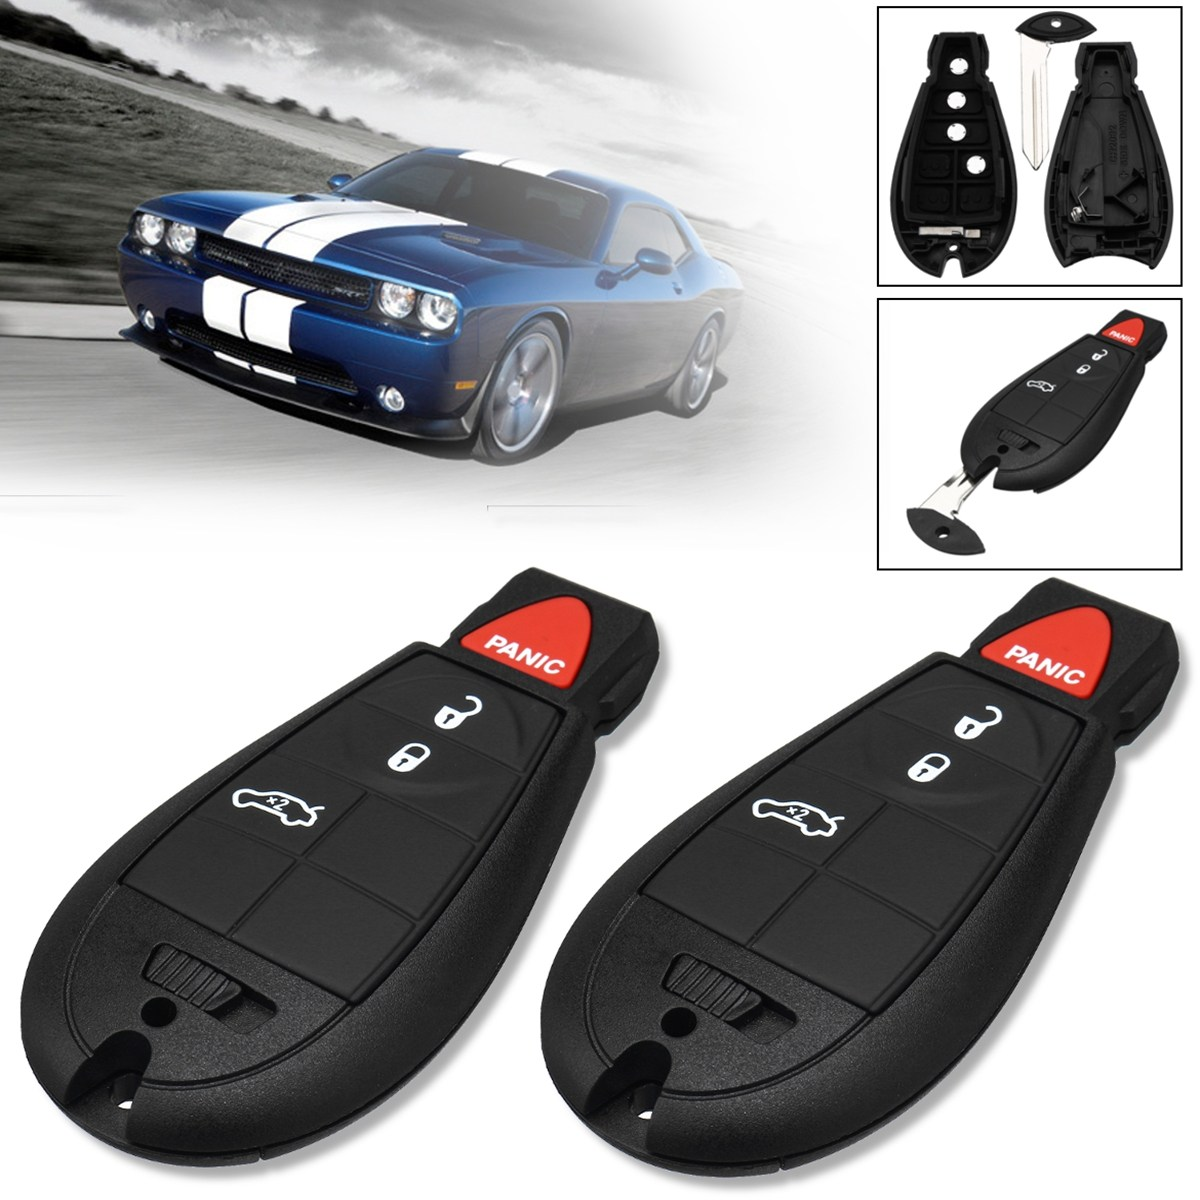 New Key Fob Remote Shell Case For a 2008 Chevrolet Tahoe w// 6 Buttons